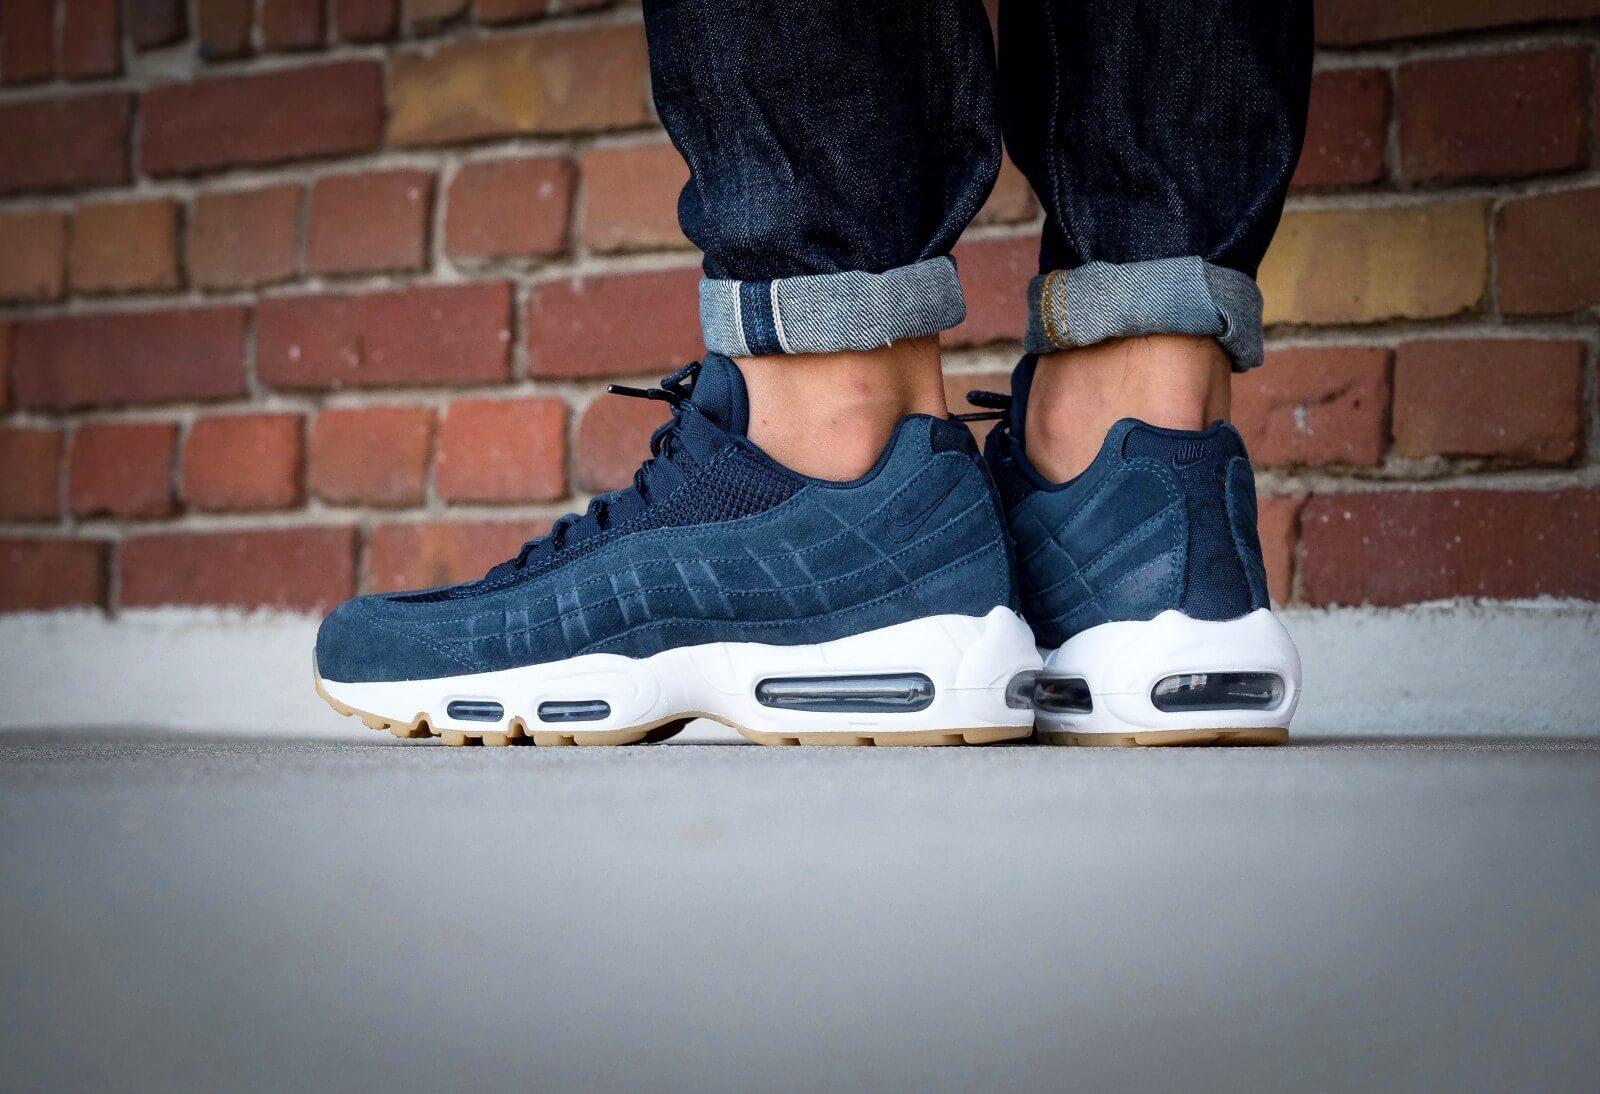 Nike Air Max 95 PRM Armory navyarmory navy blue fox 538416 402